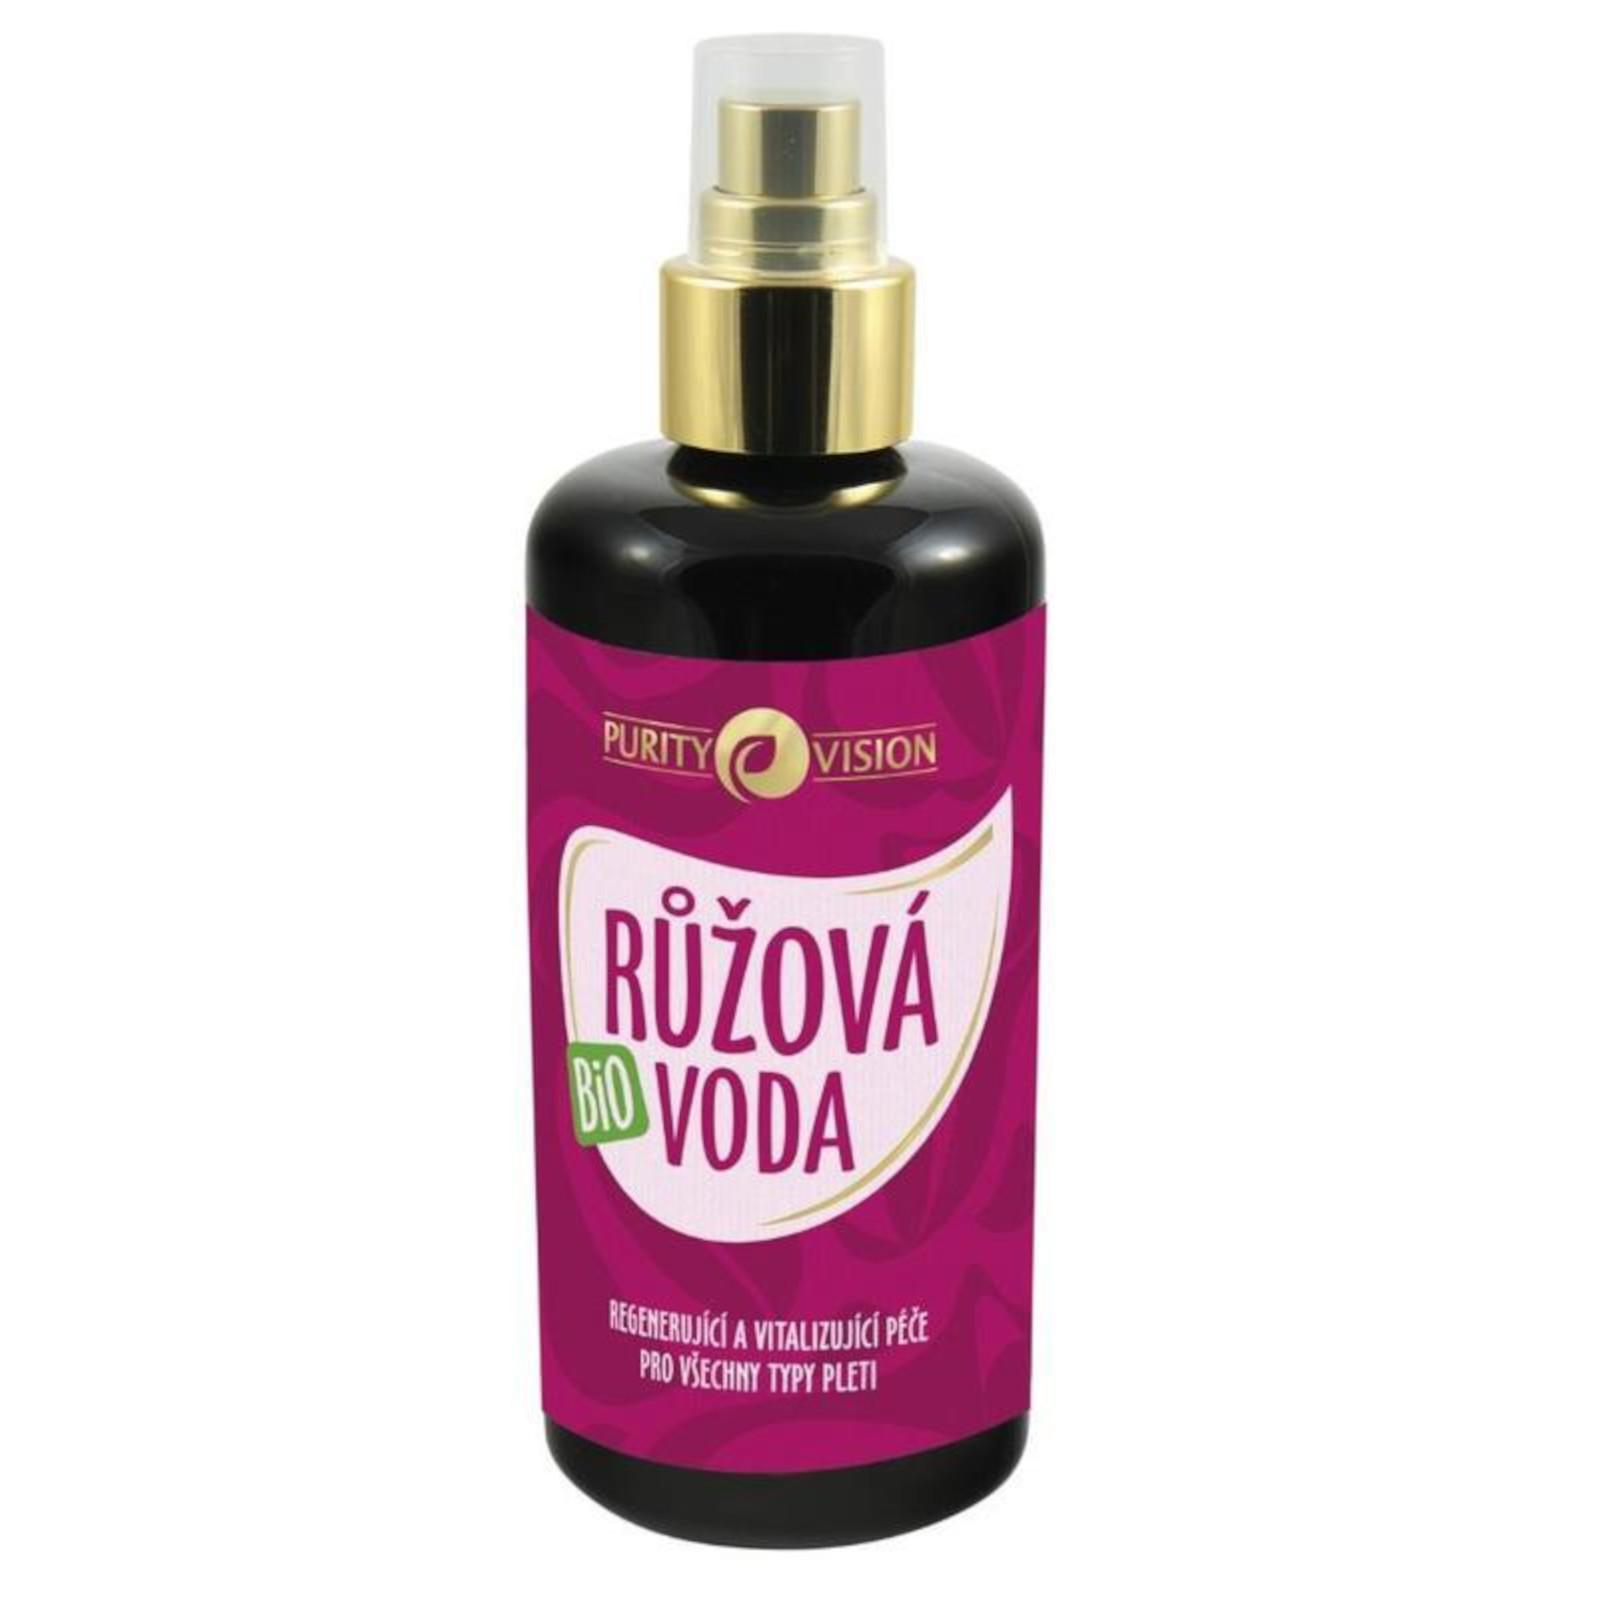 Purity Vision Růžová voda, bio 200 ml